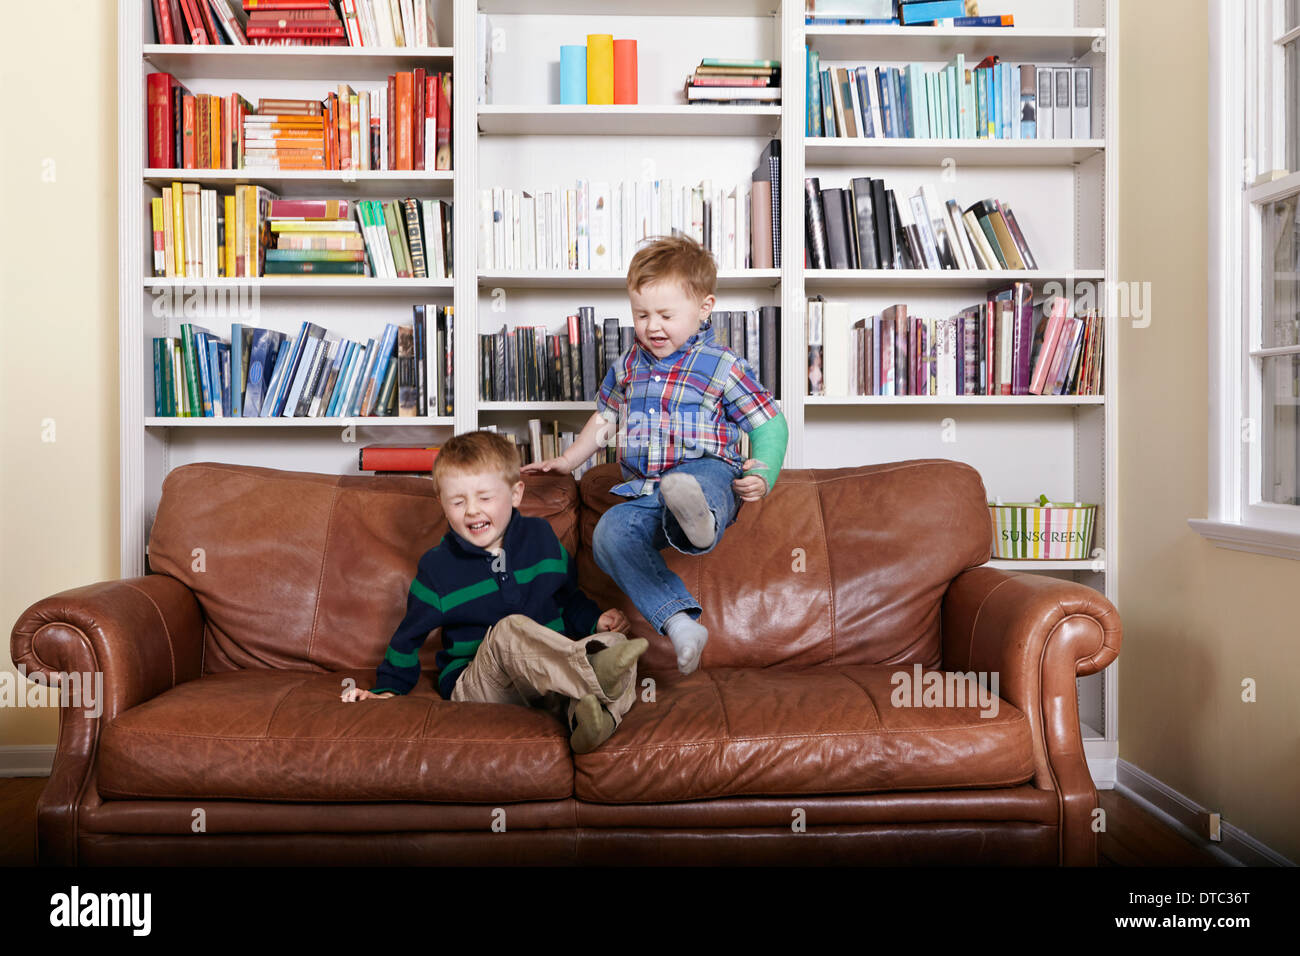 Two young brothers jumping on sofa - Stock Image